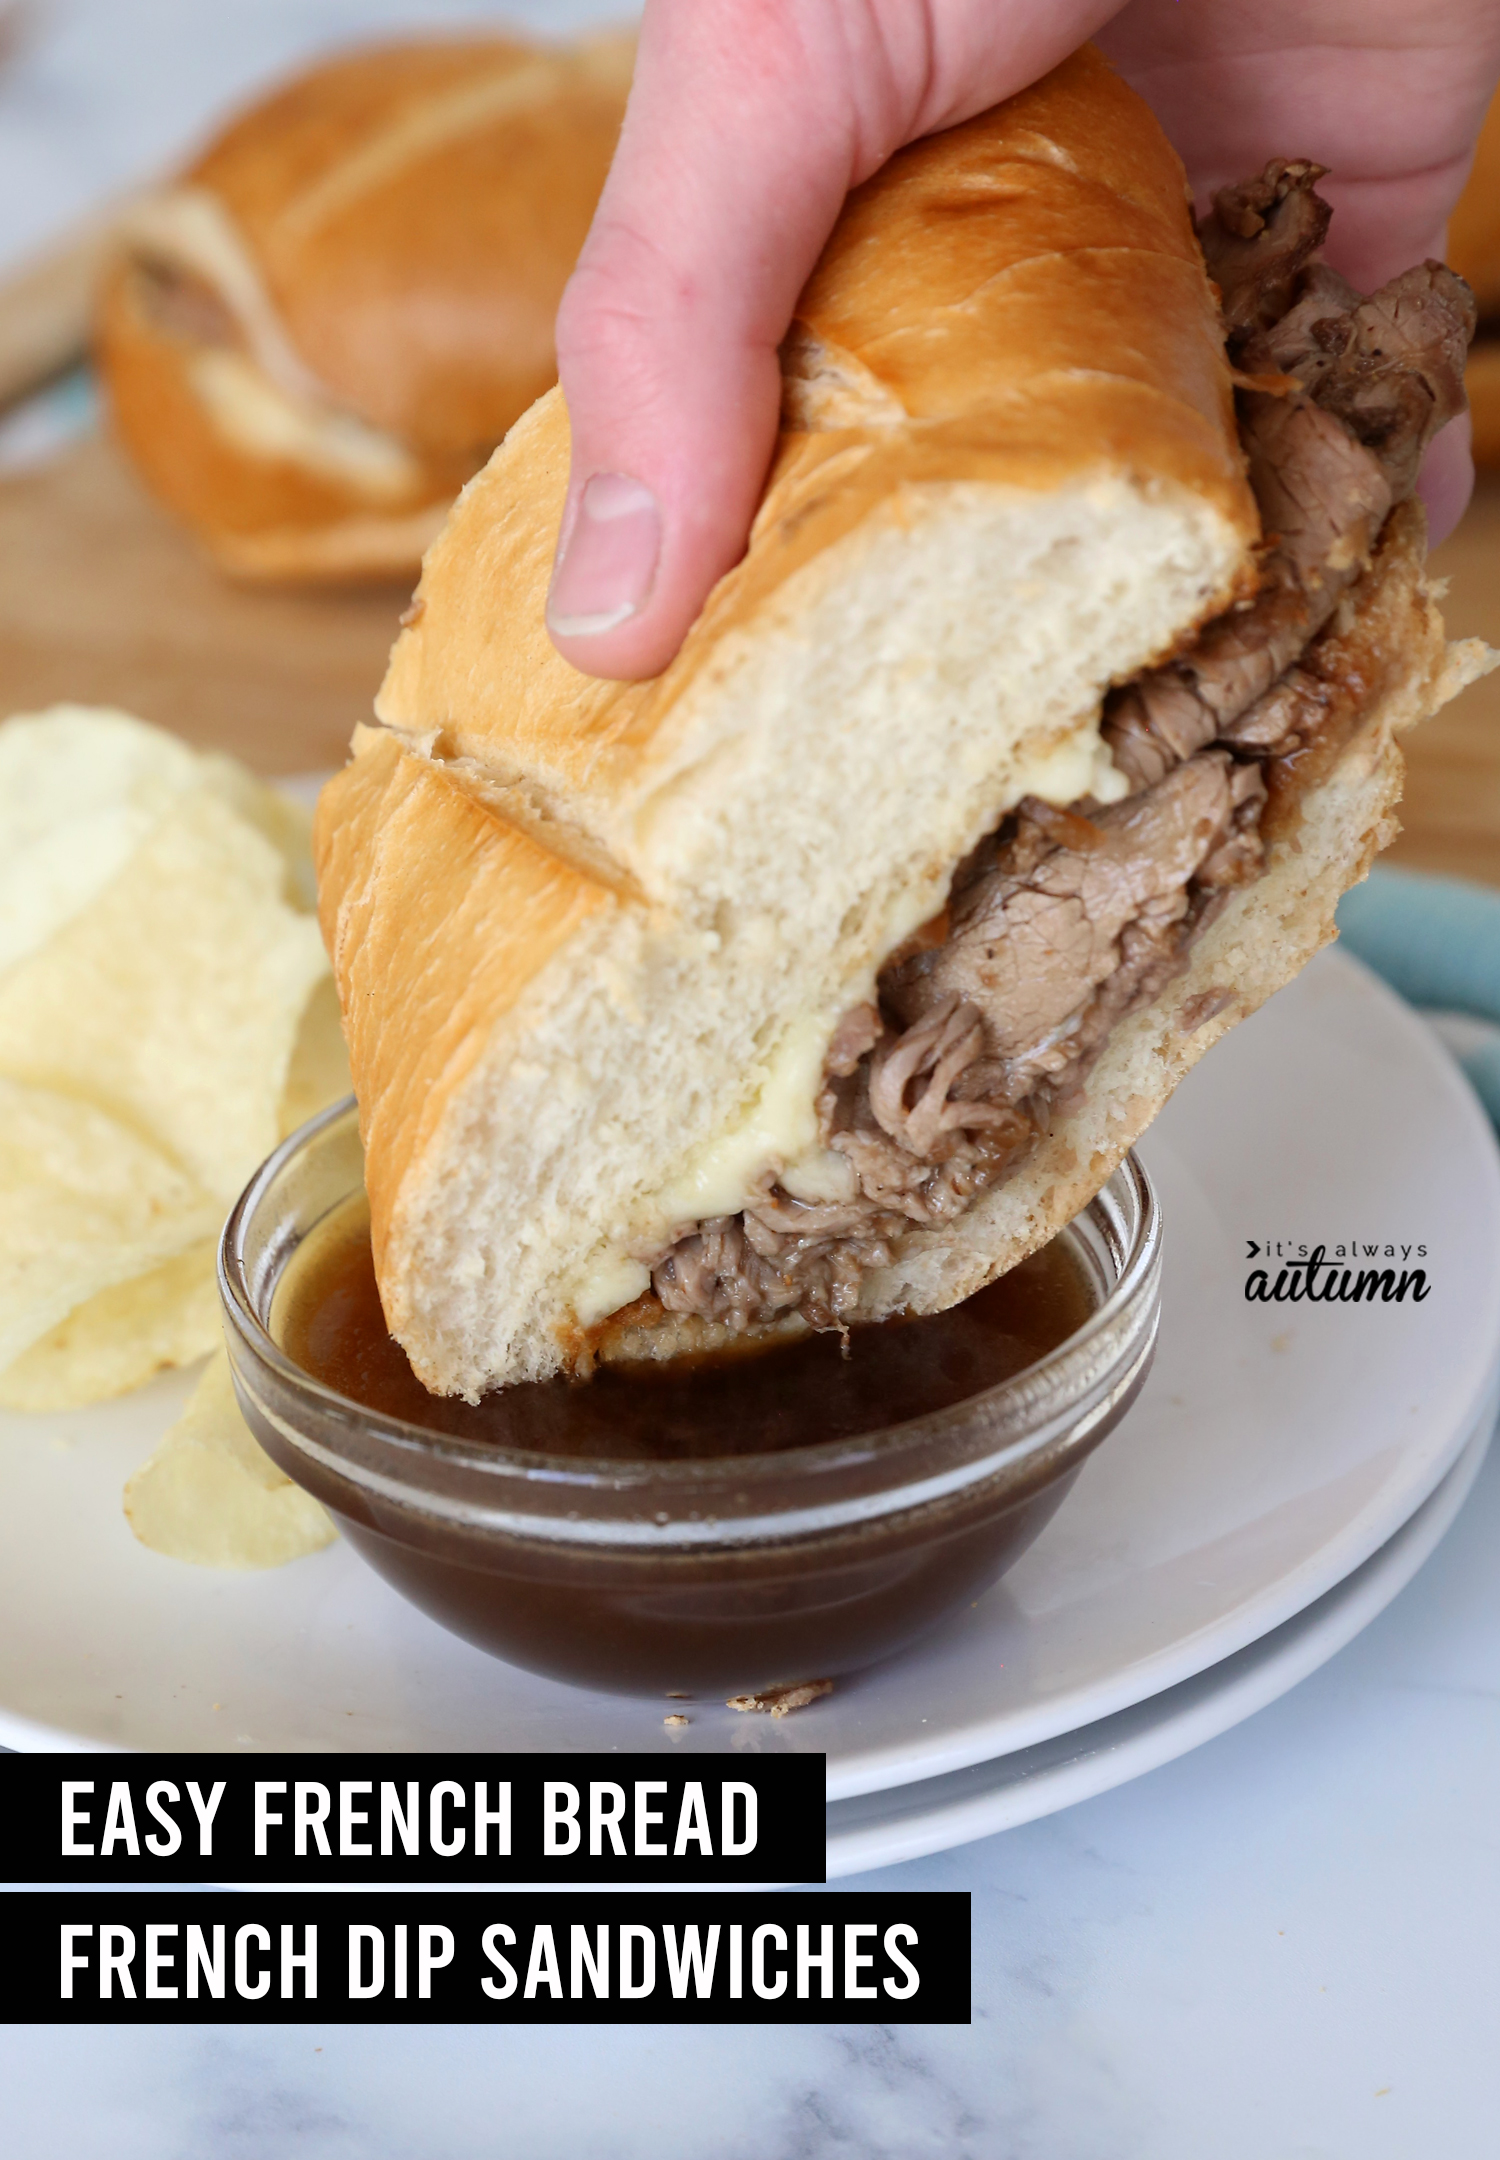 Hand dipping roast beef sandwich into au jus with words: easy french bread french dip sandwiches